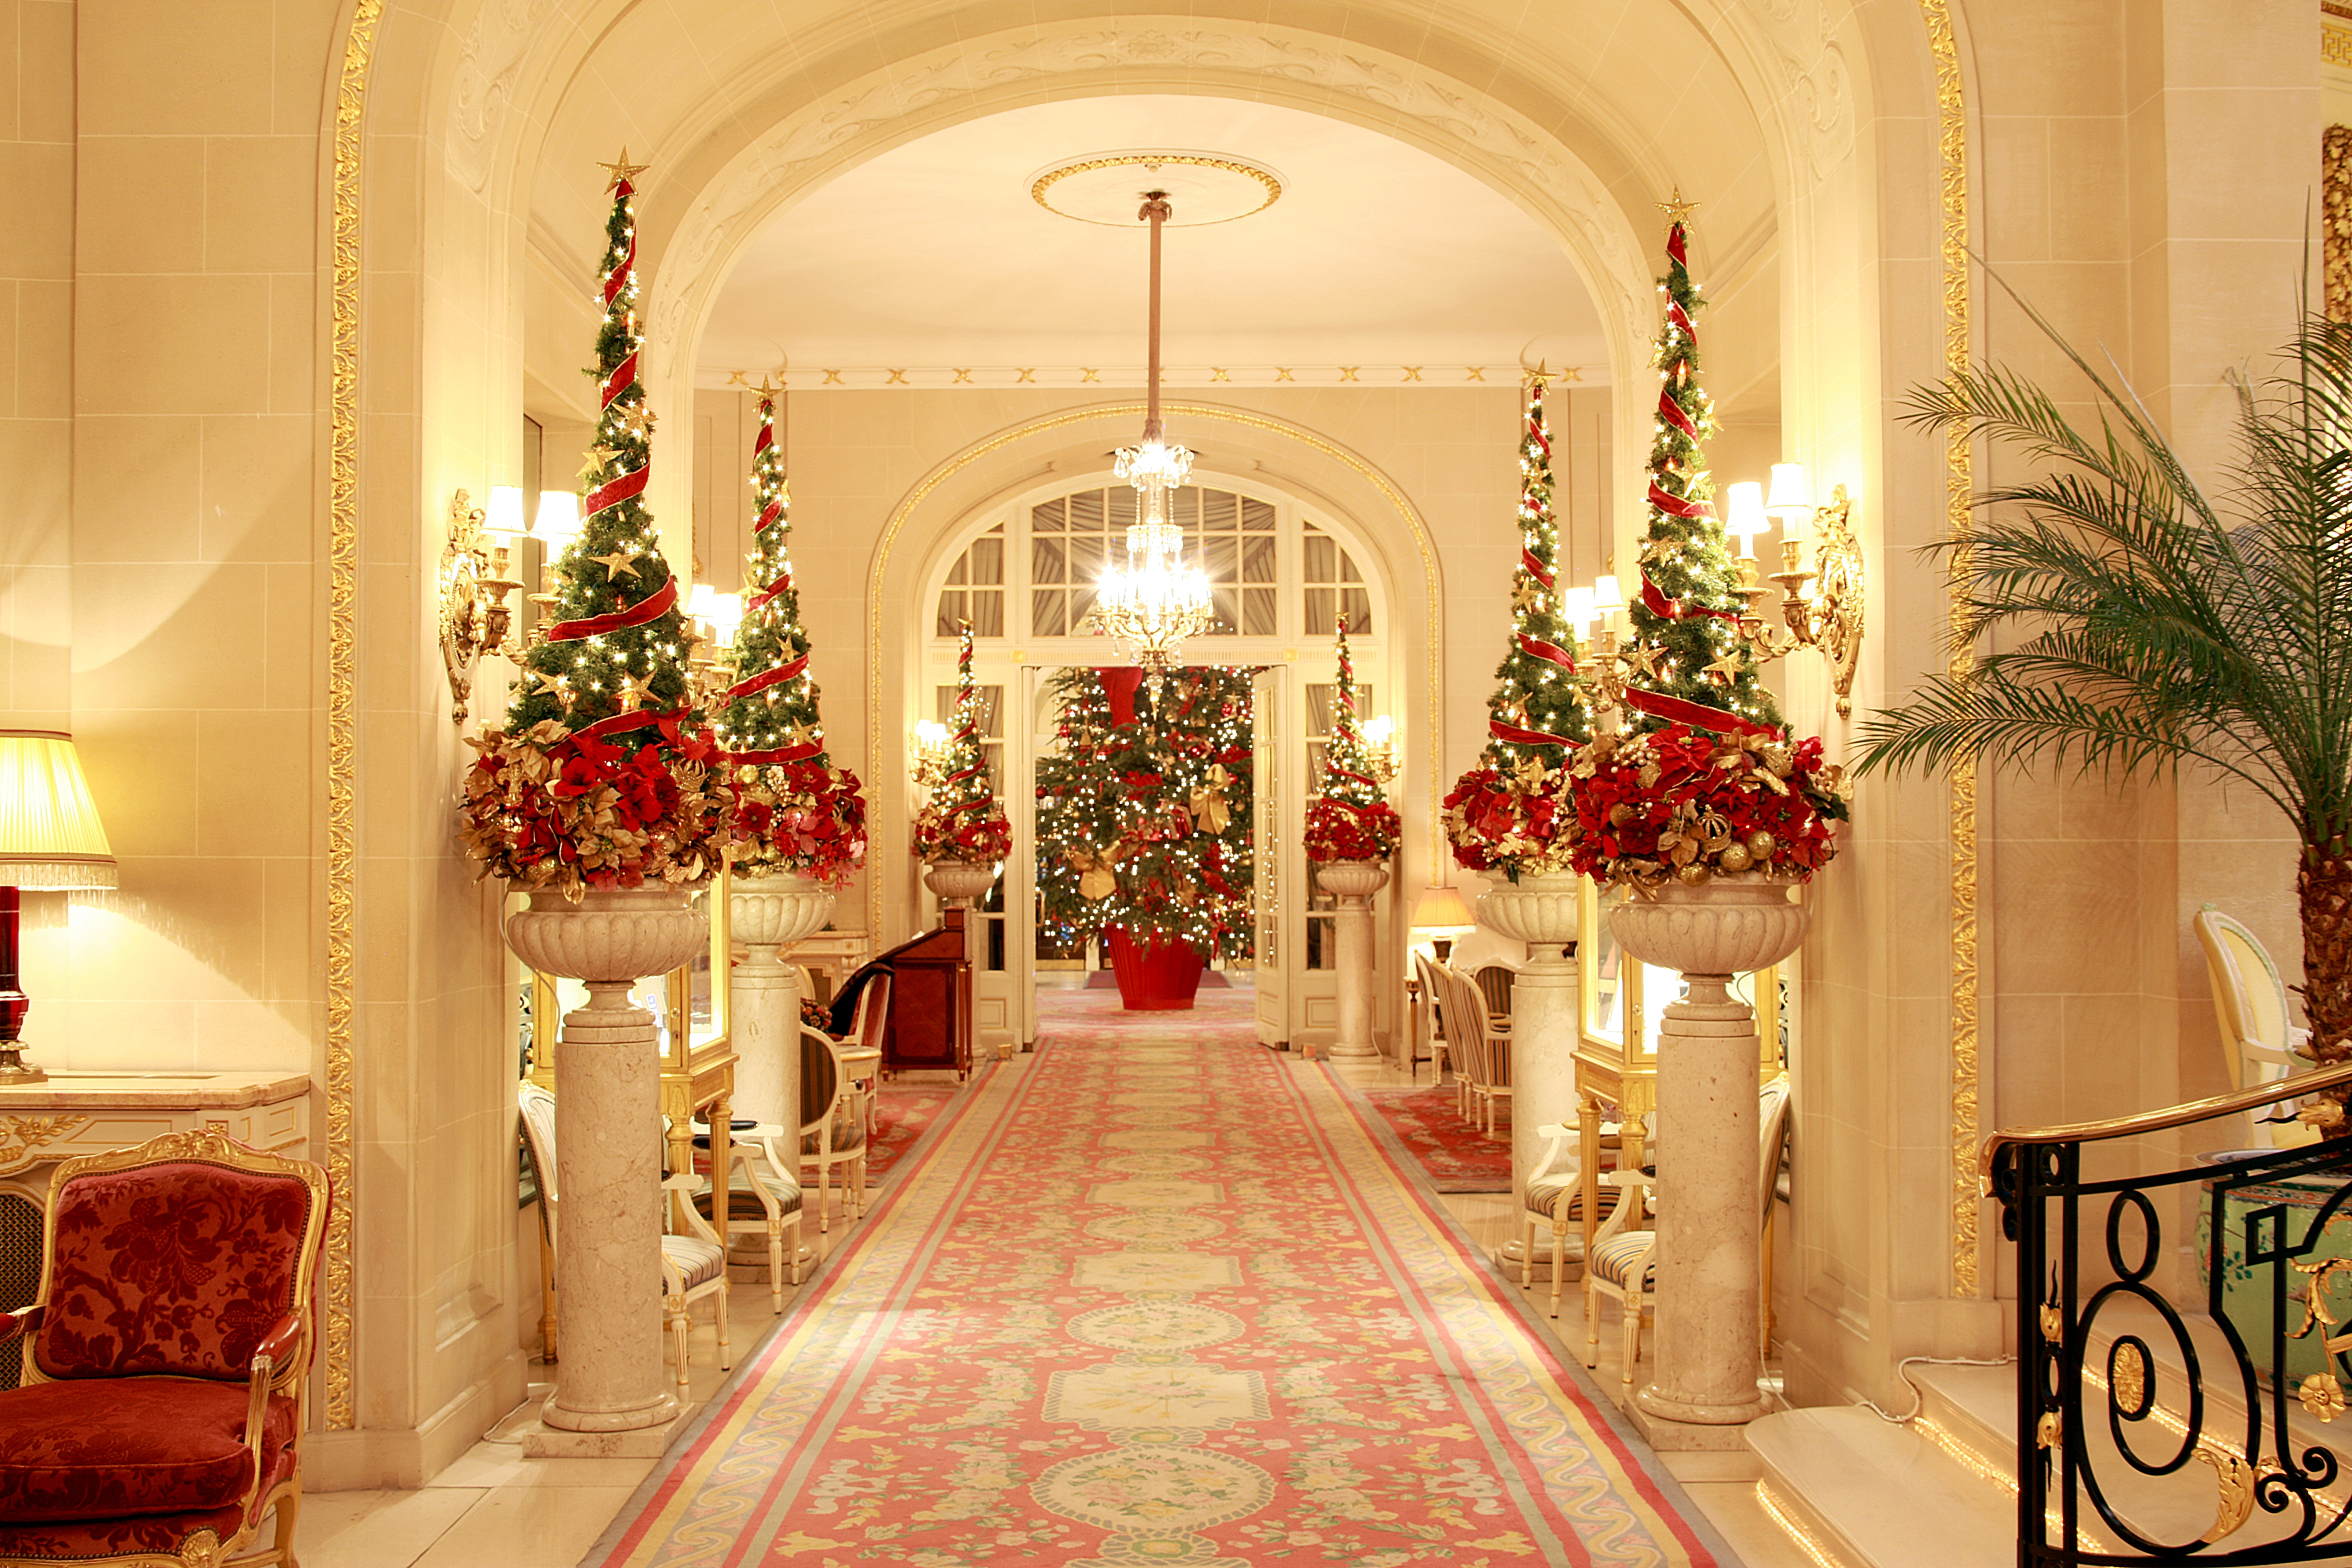 Decoration Hotel Hotels At Christmas 15 That Go All Out For The Holidays Cnn Travel